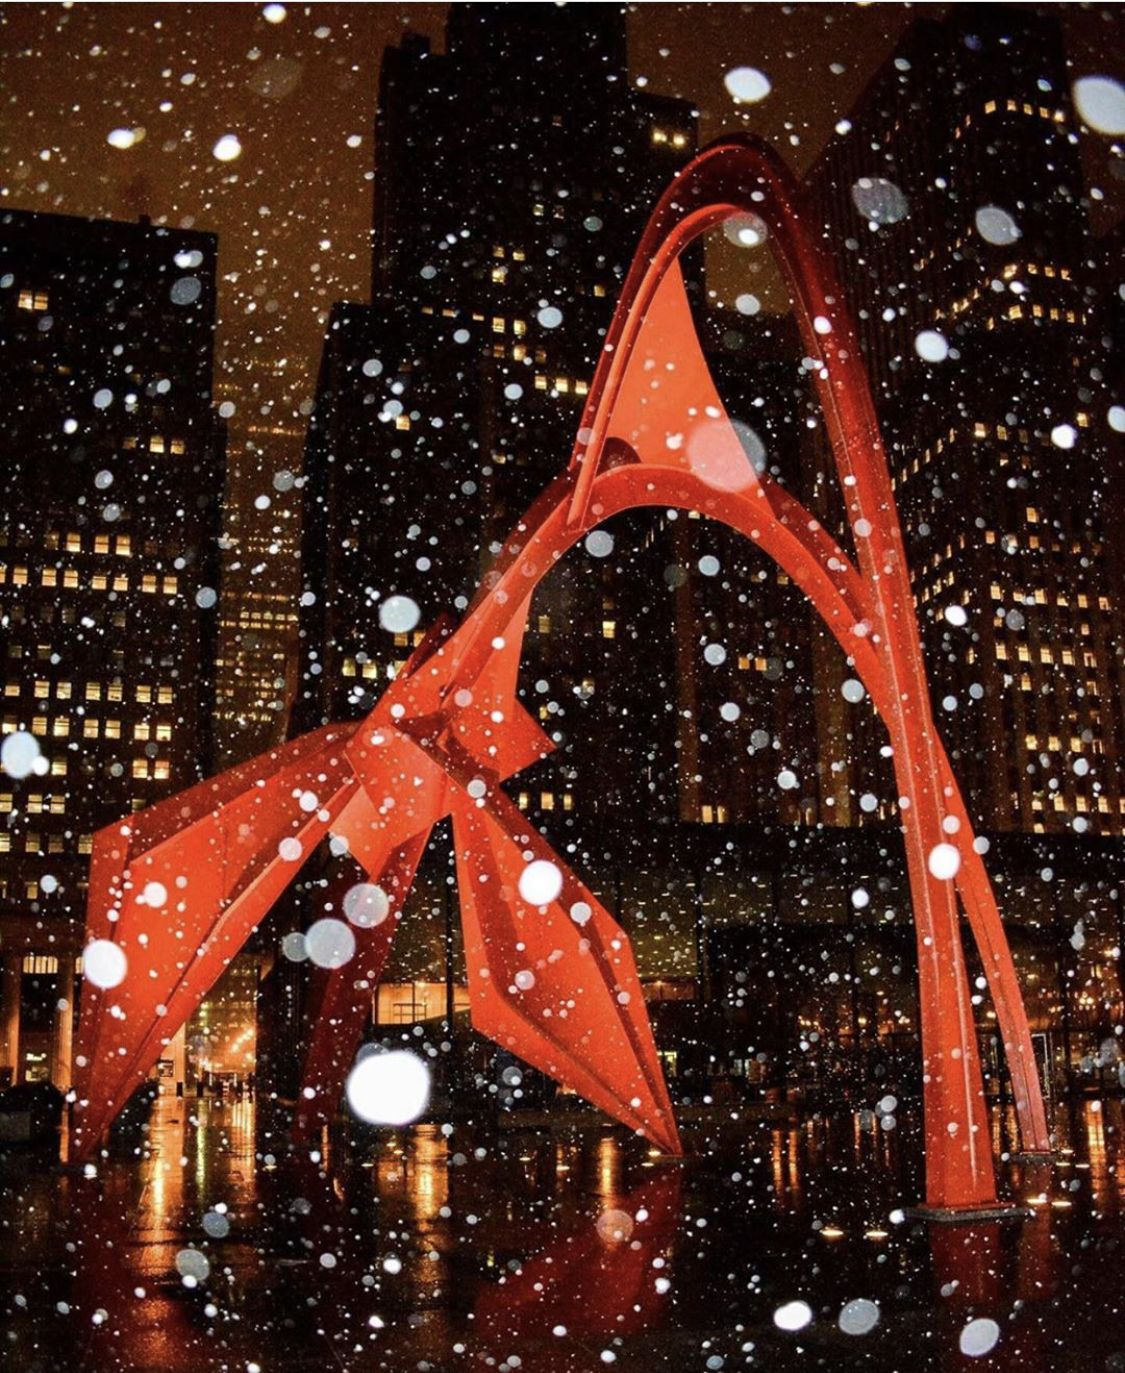 Time Out Chicago Christmas 2020 Pin by NativeNewYorker on Chicago in 2020 | Raise your hand, Happy